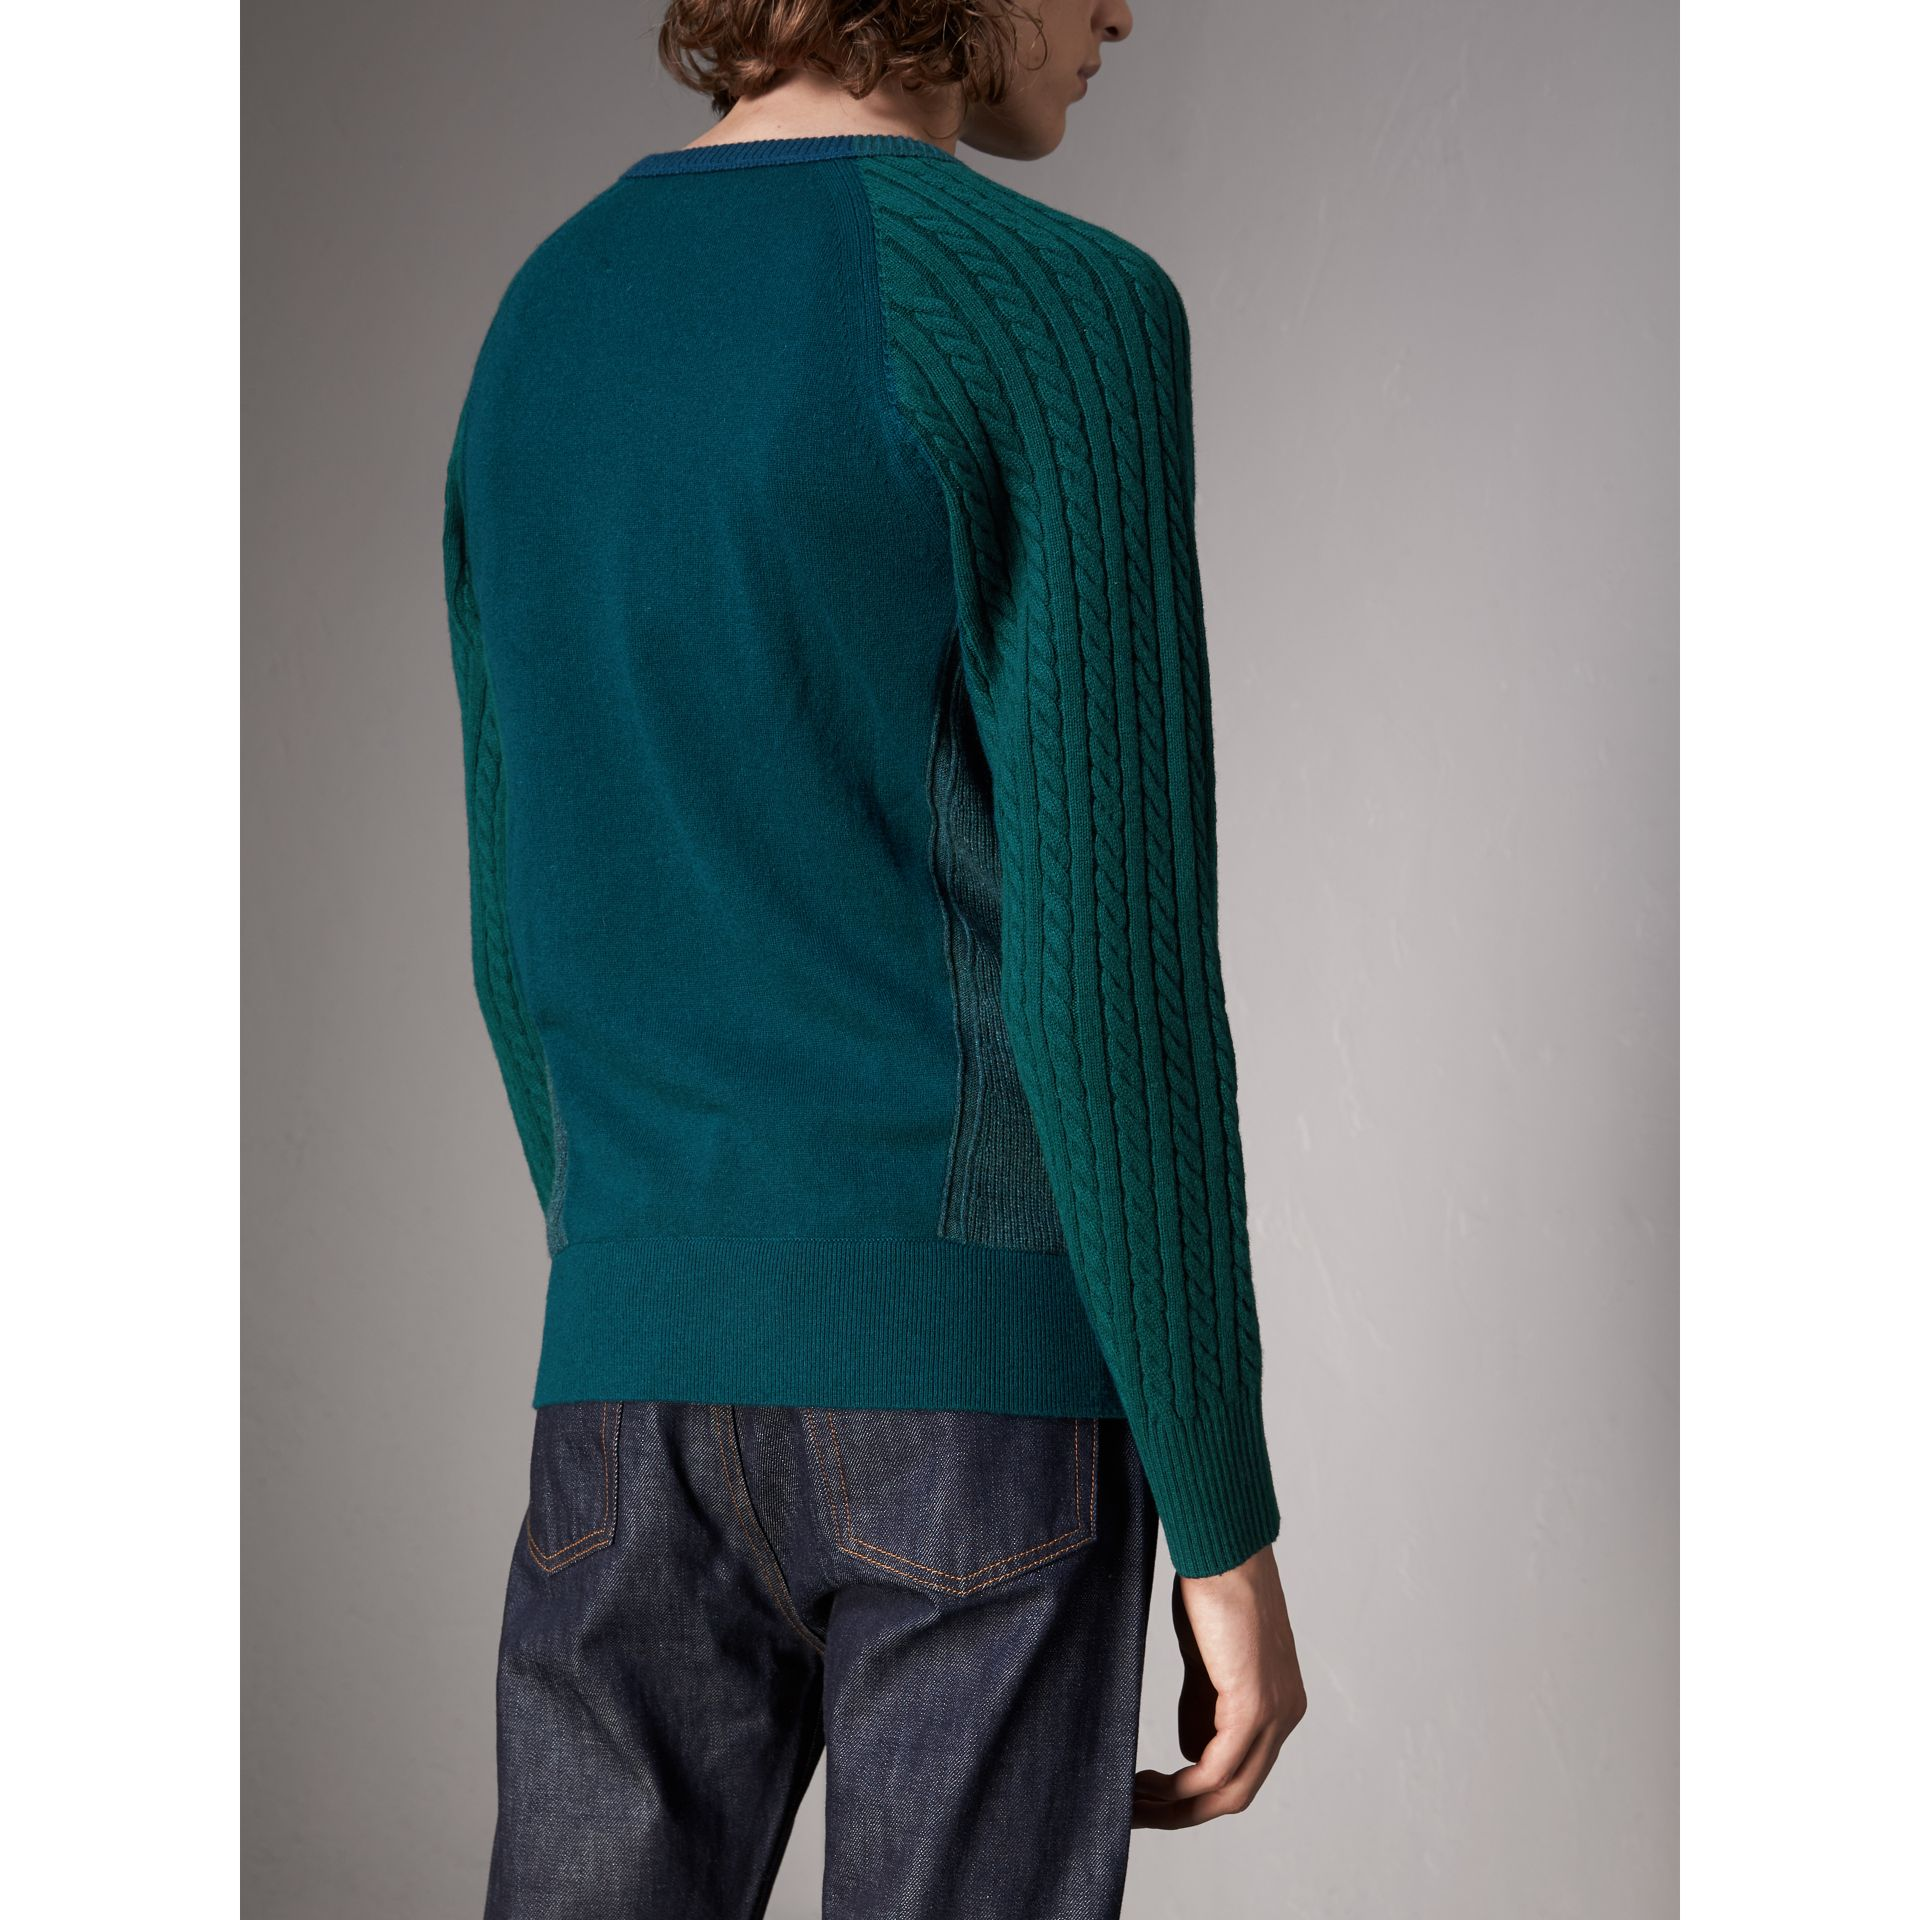 Two-tone Cable Knit Cashmere Sweater in Dark Teal - Men | Burberry - gallery image 2